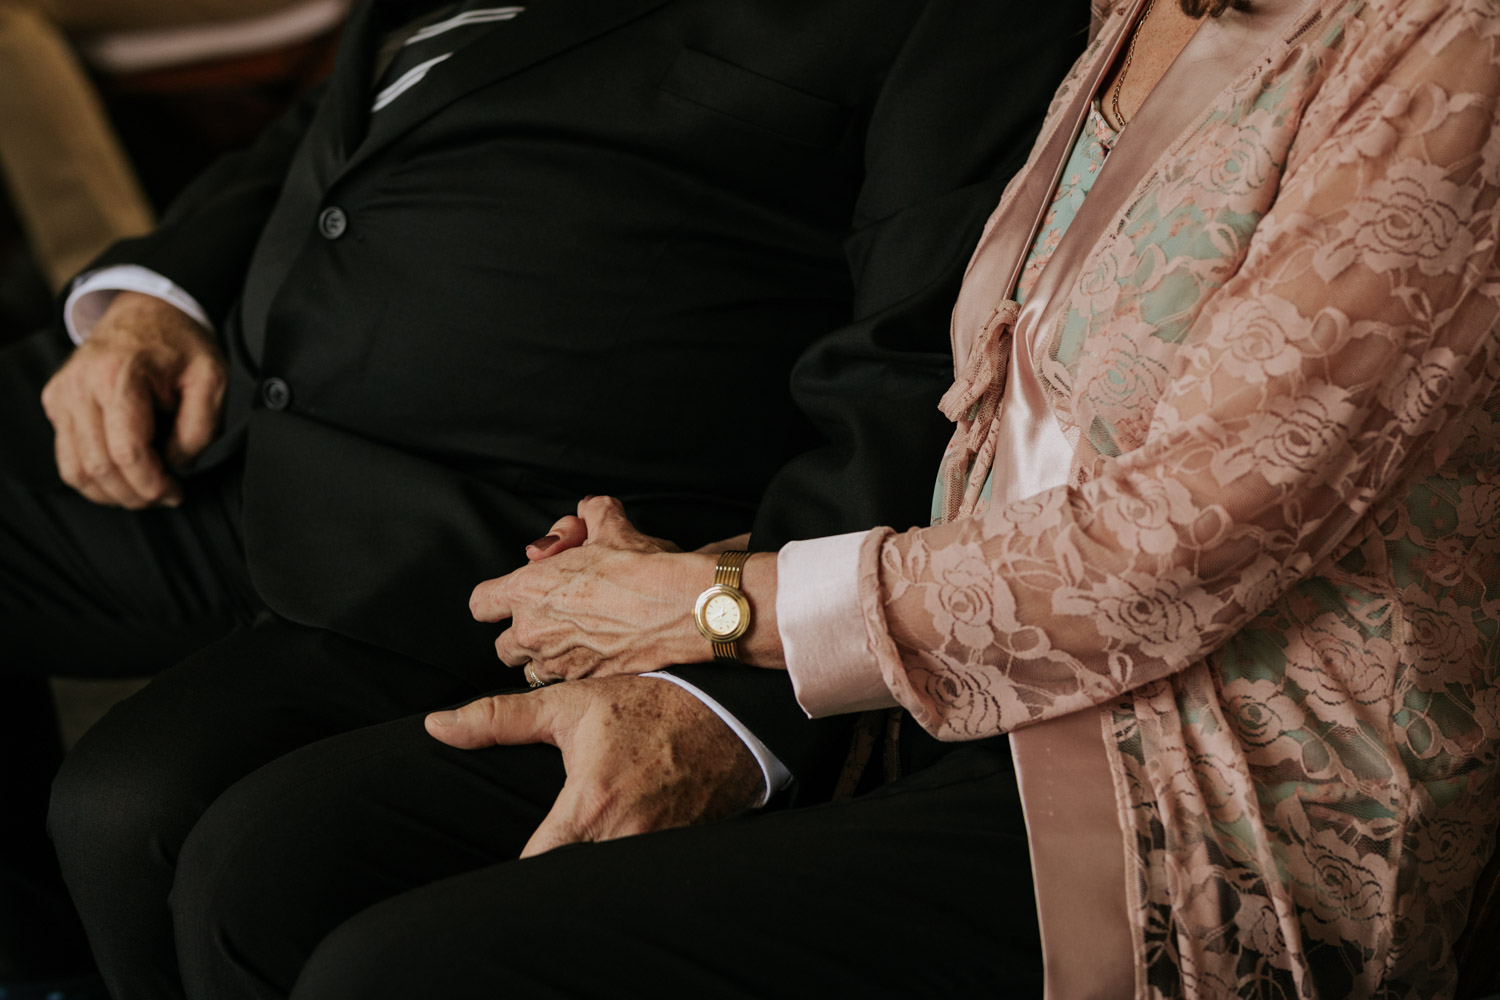 Parents Of Groom Share Moment And Holds Hands In Wedding Ceremony